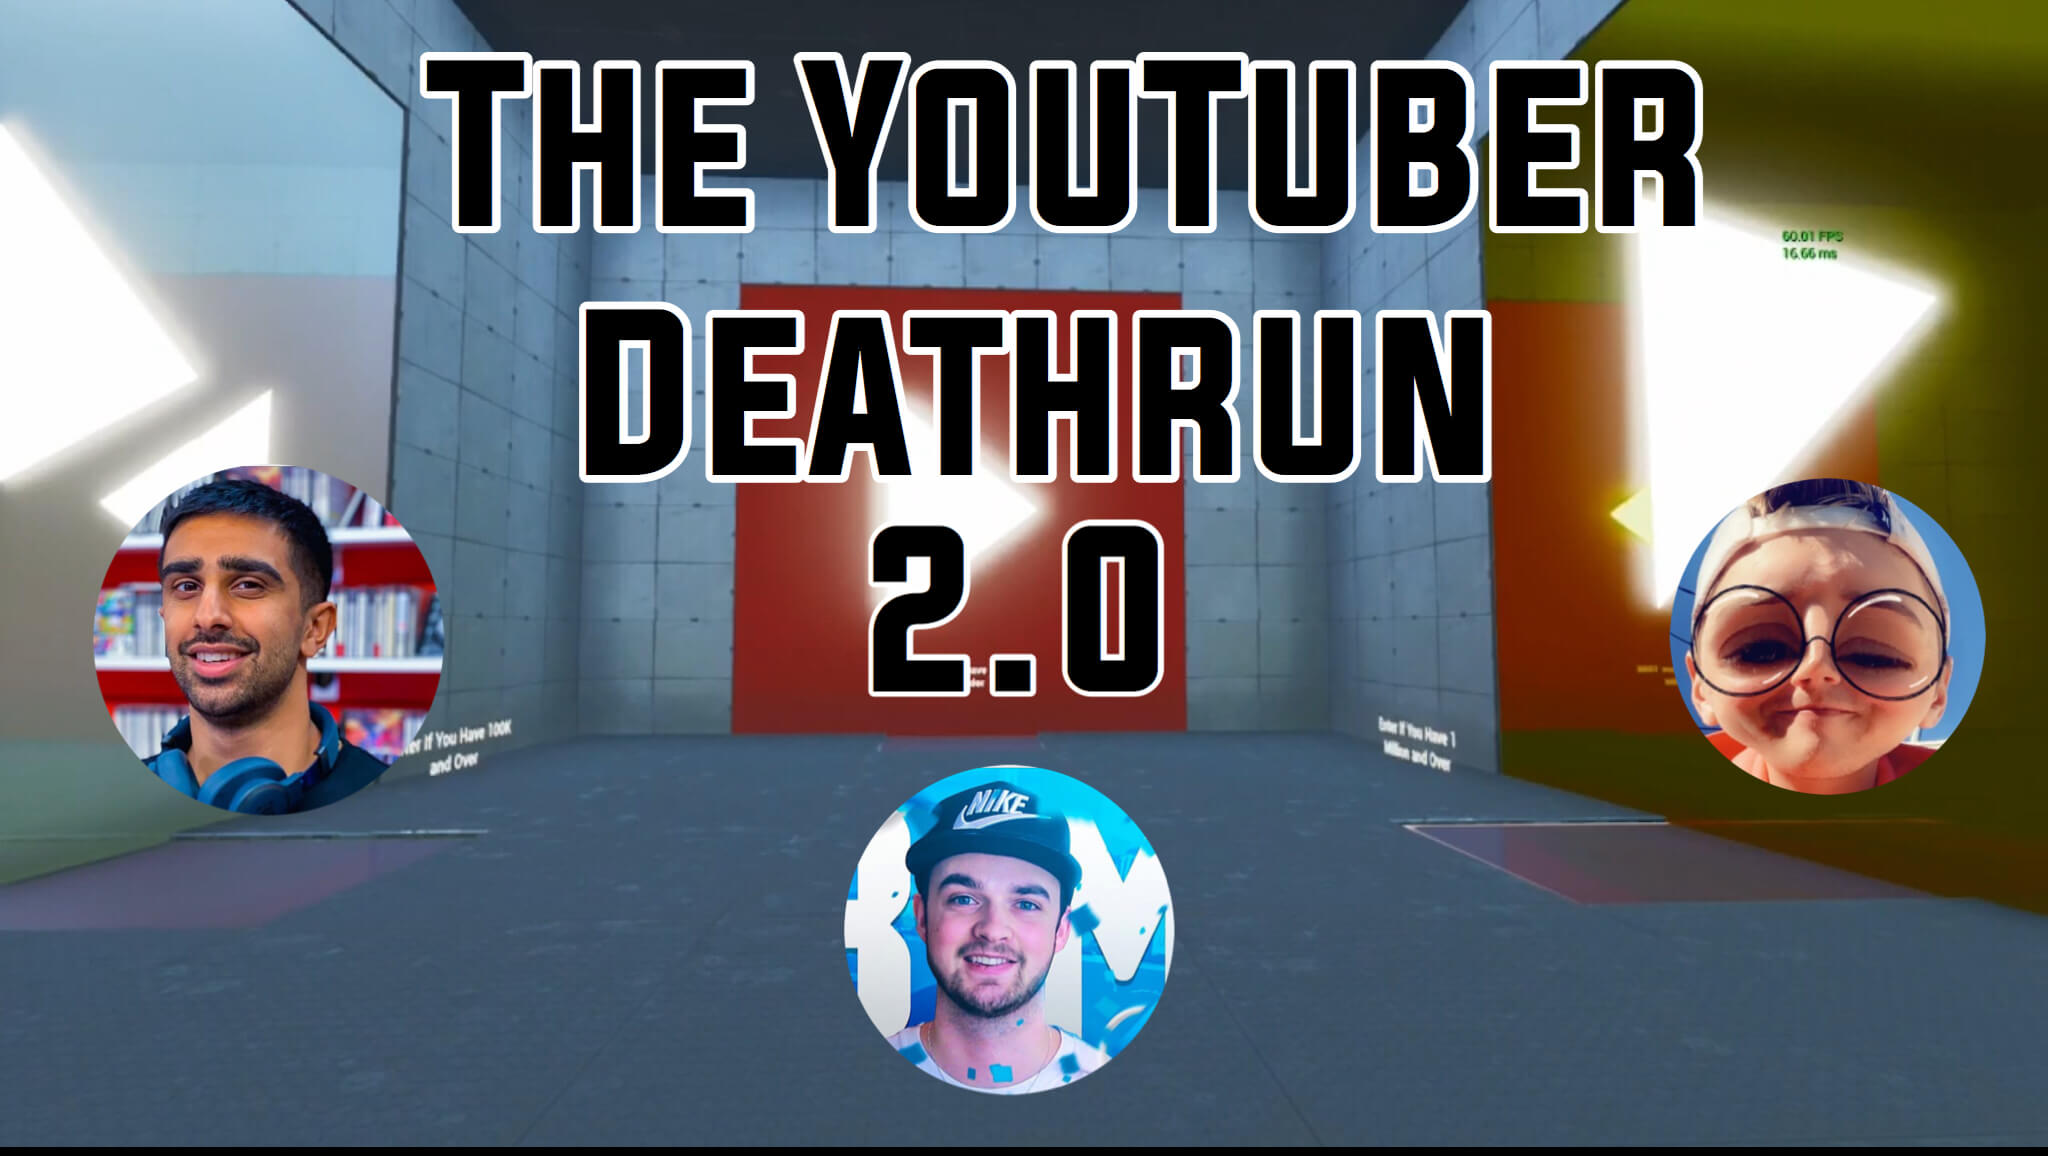 THE YOUTUBER DEATHRUN 2.0